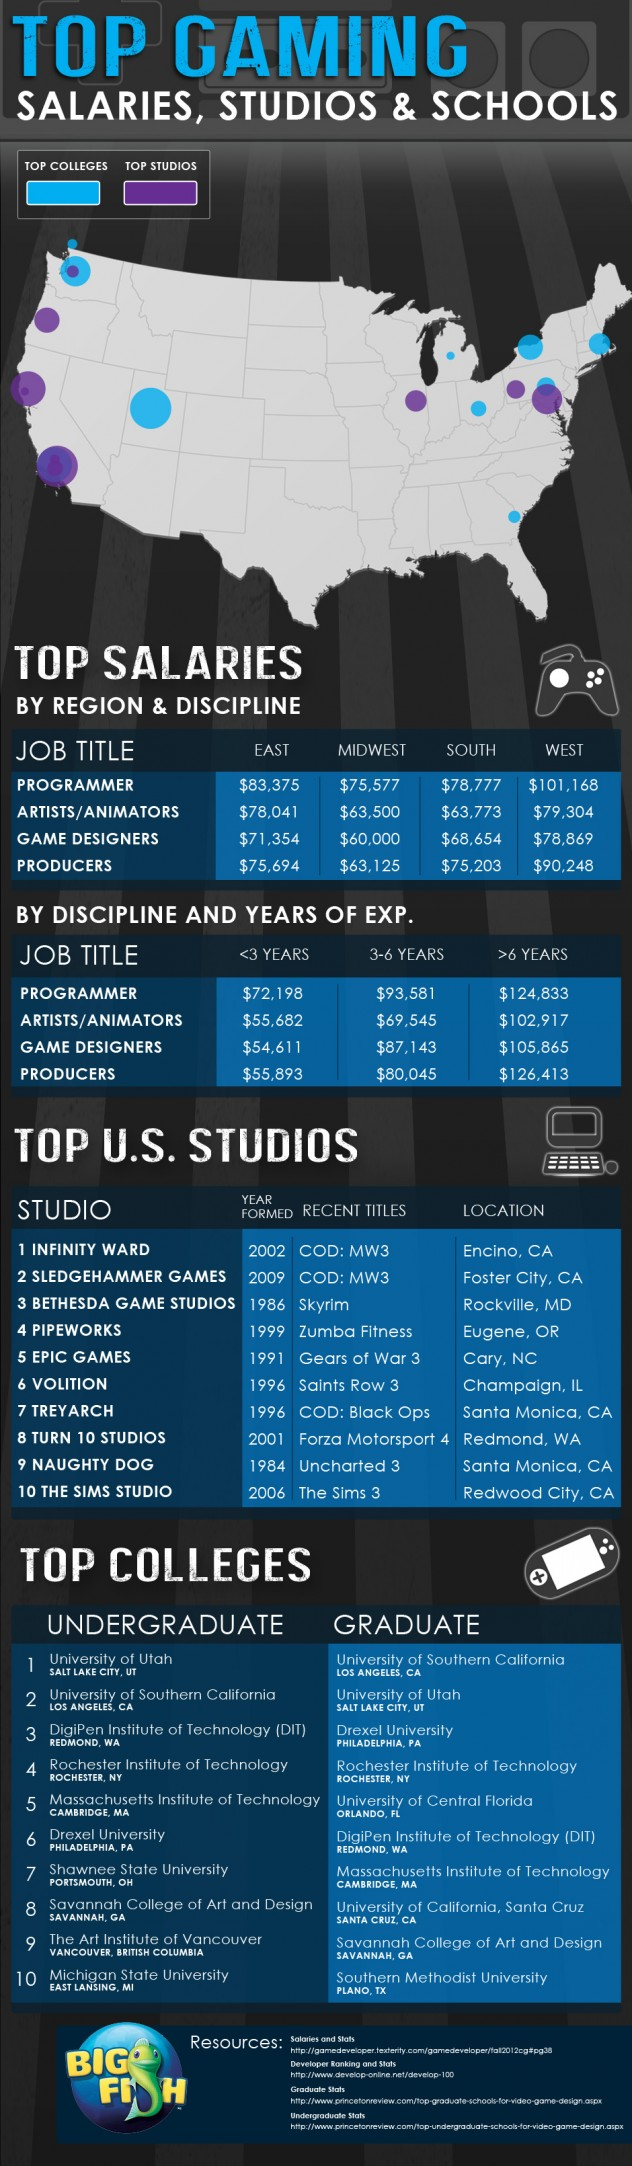 Top Gaming Salaries, Studios And Schools